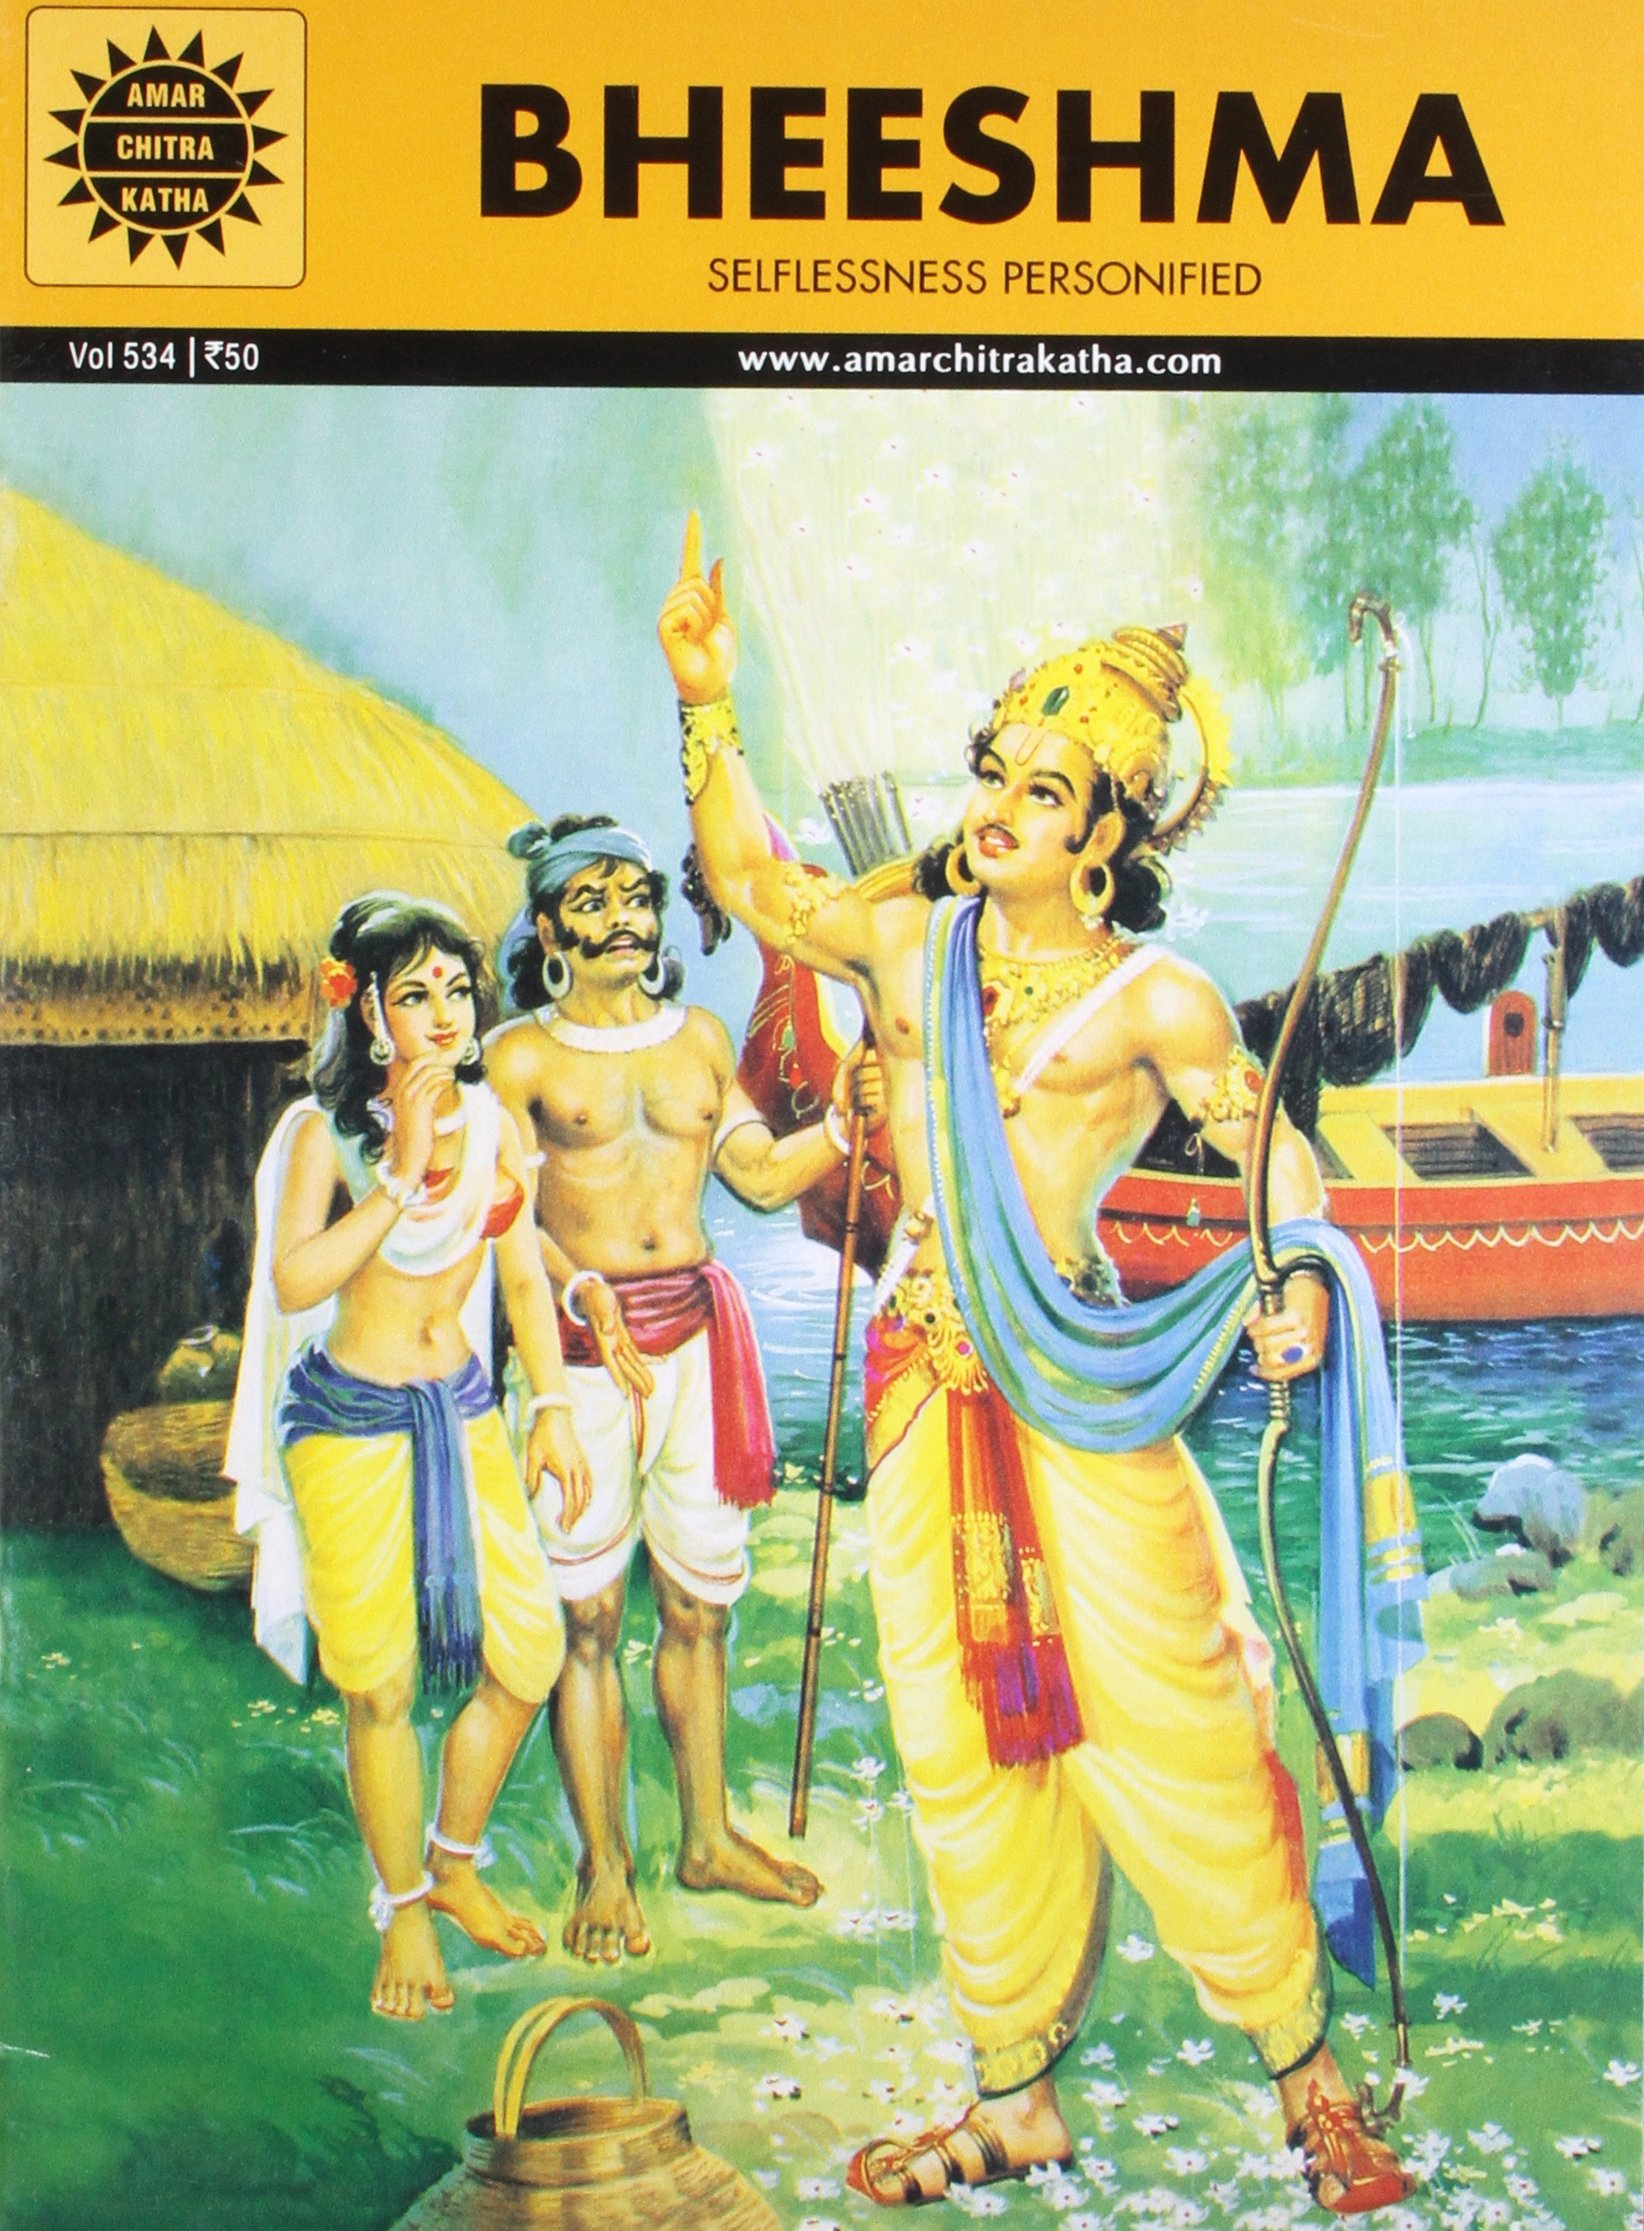 Buy Bheeshma Amar Chitra Katha Book Online At Low Prices In India Bheeshma Amar Chitra Katha Reviews Ratings Amazon In